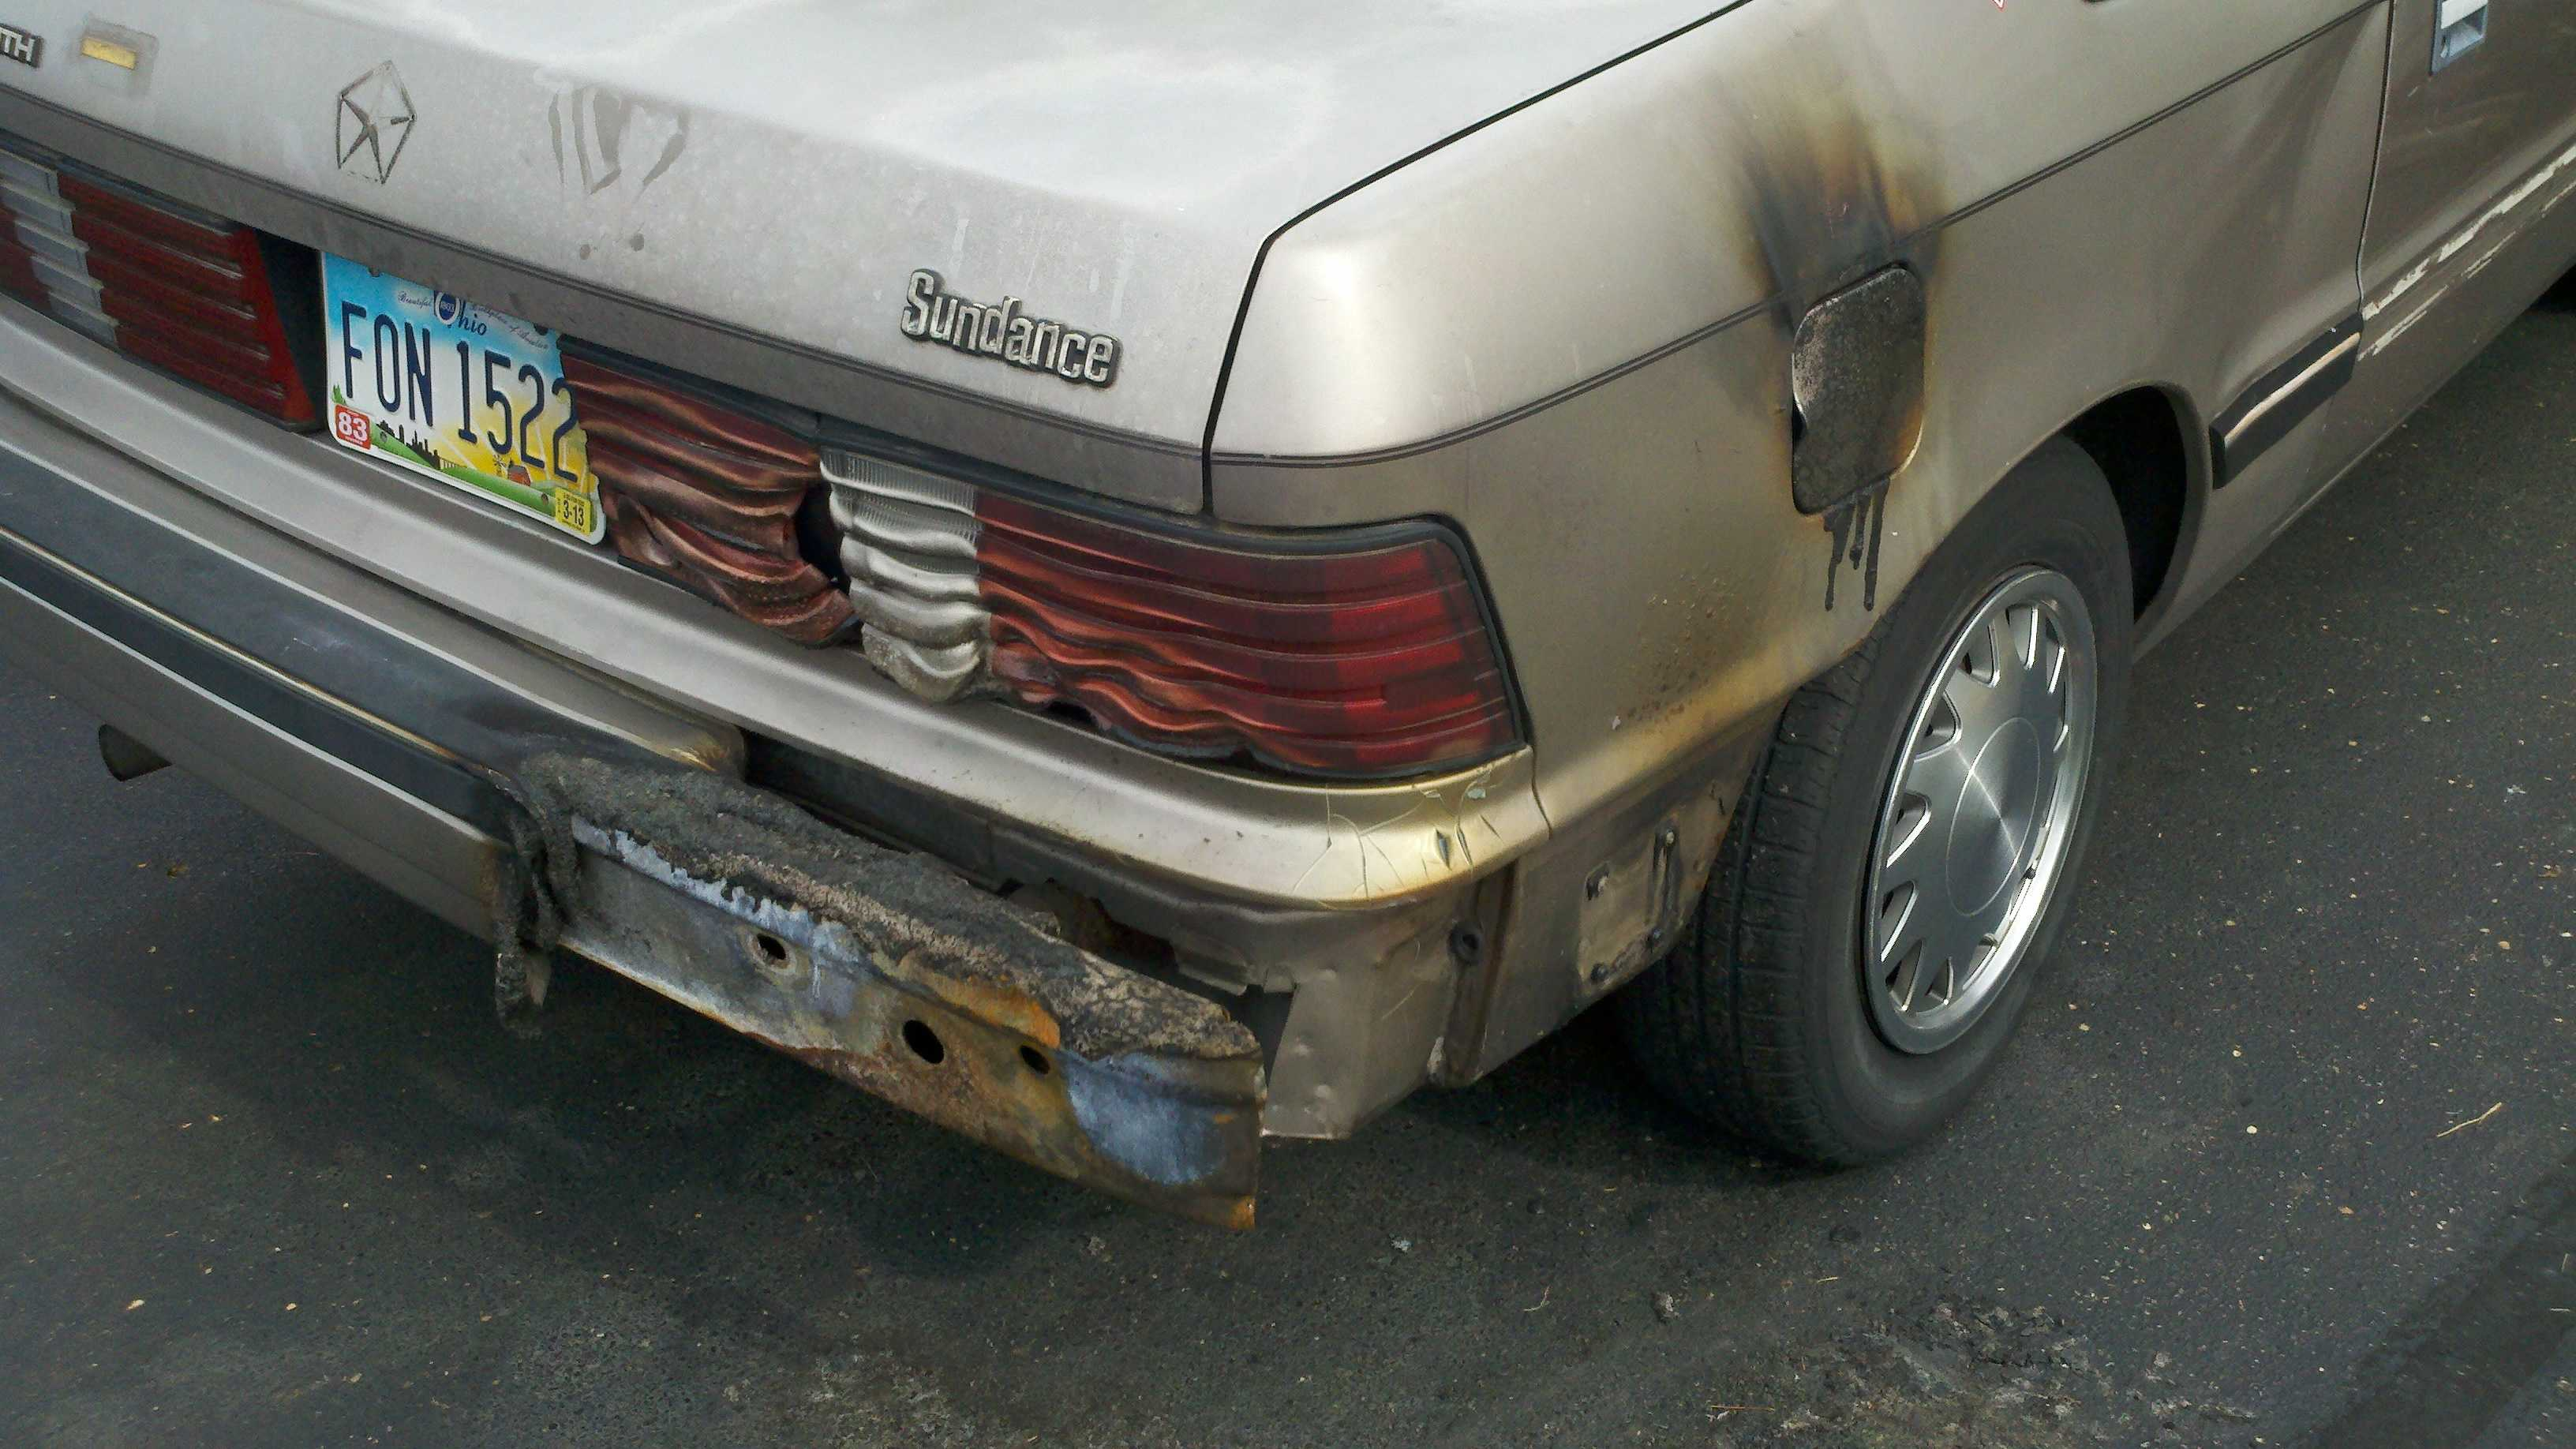 Vandals set fire to cars, slashed tires and broke windows in Landen